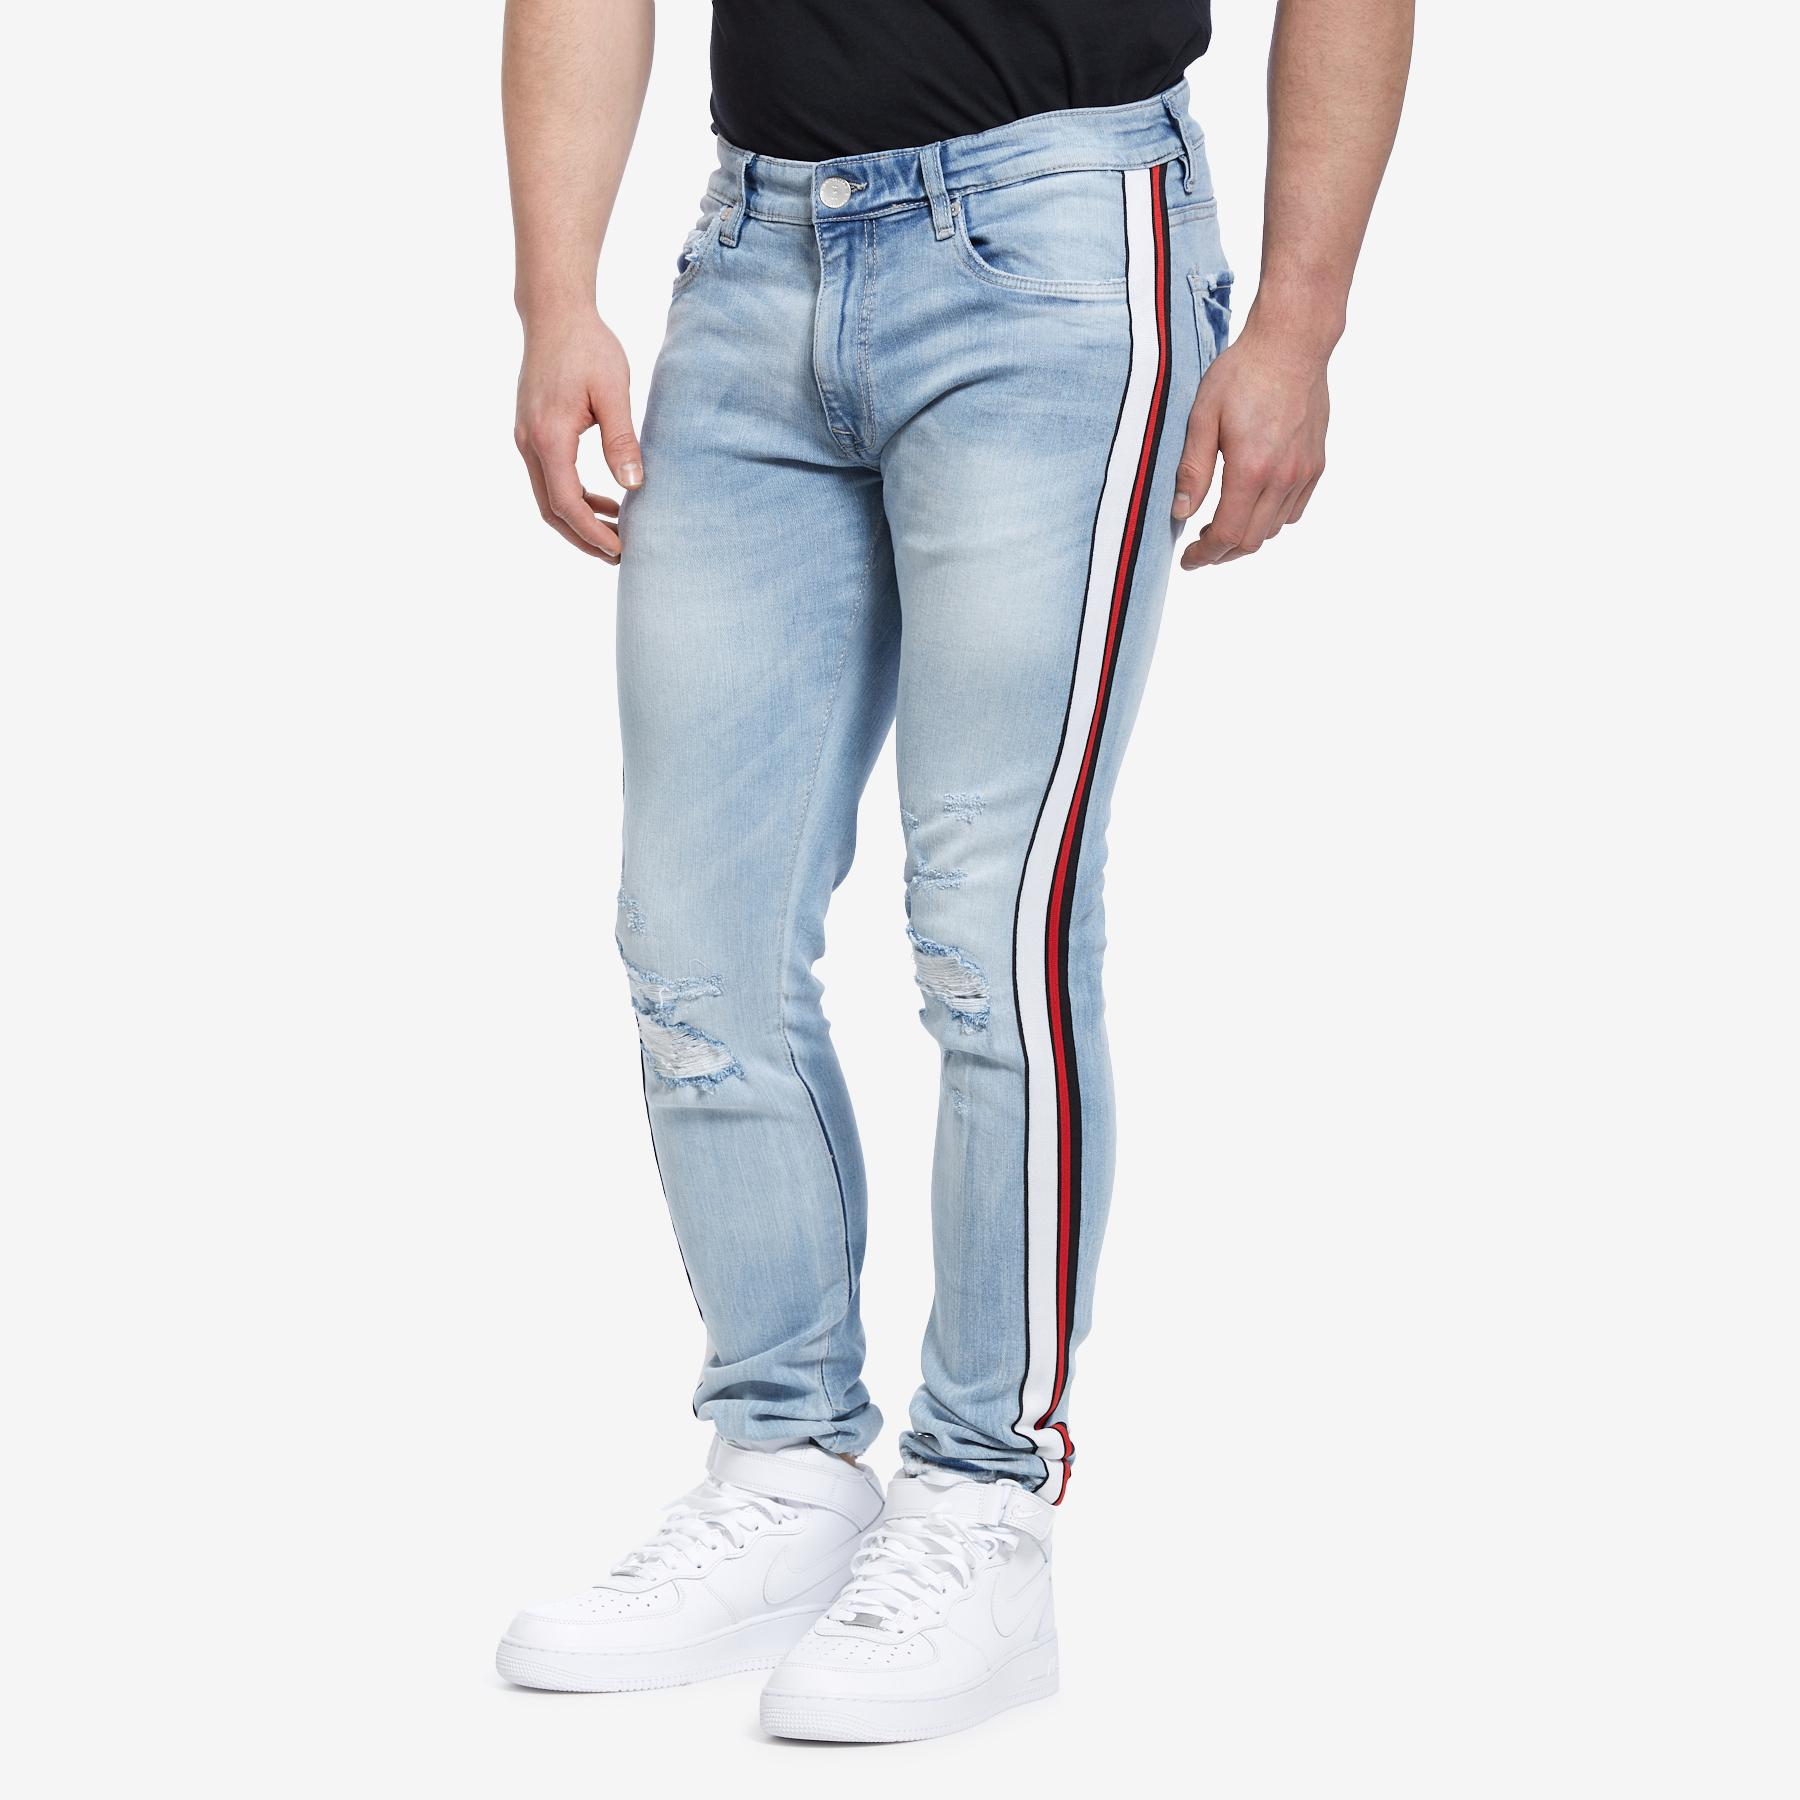 Sean- Sugar Hill Striped Denim